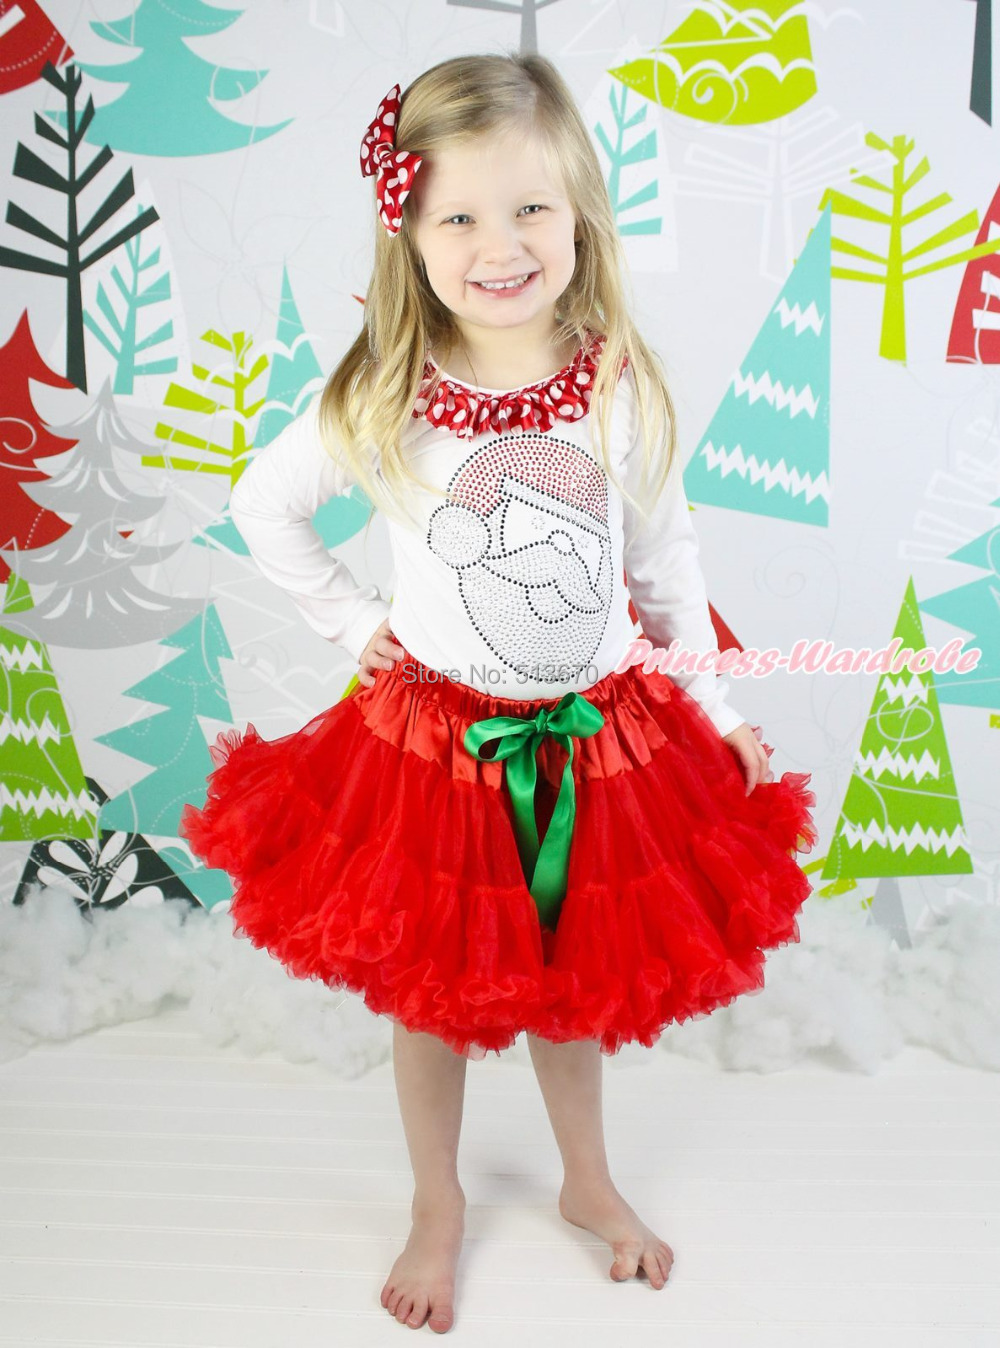 XMAS Rhinestone Santa Claus White Top Hot Red Skirt Baby Girl Outfit Set 1-8Year MAPSA0082 xmas minnie snowman white shirt top santa claus skirt girl clothing outfit 1 8y